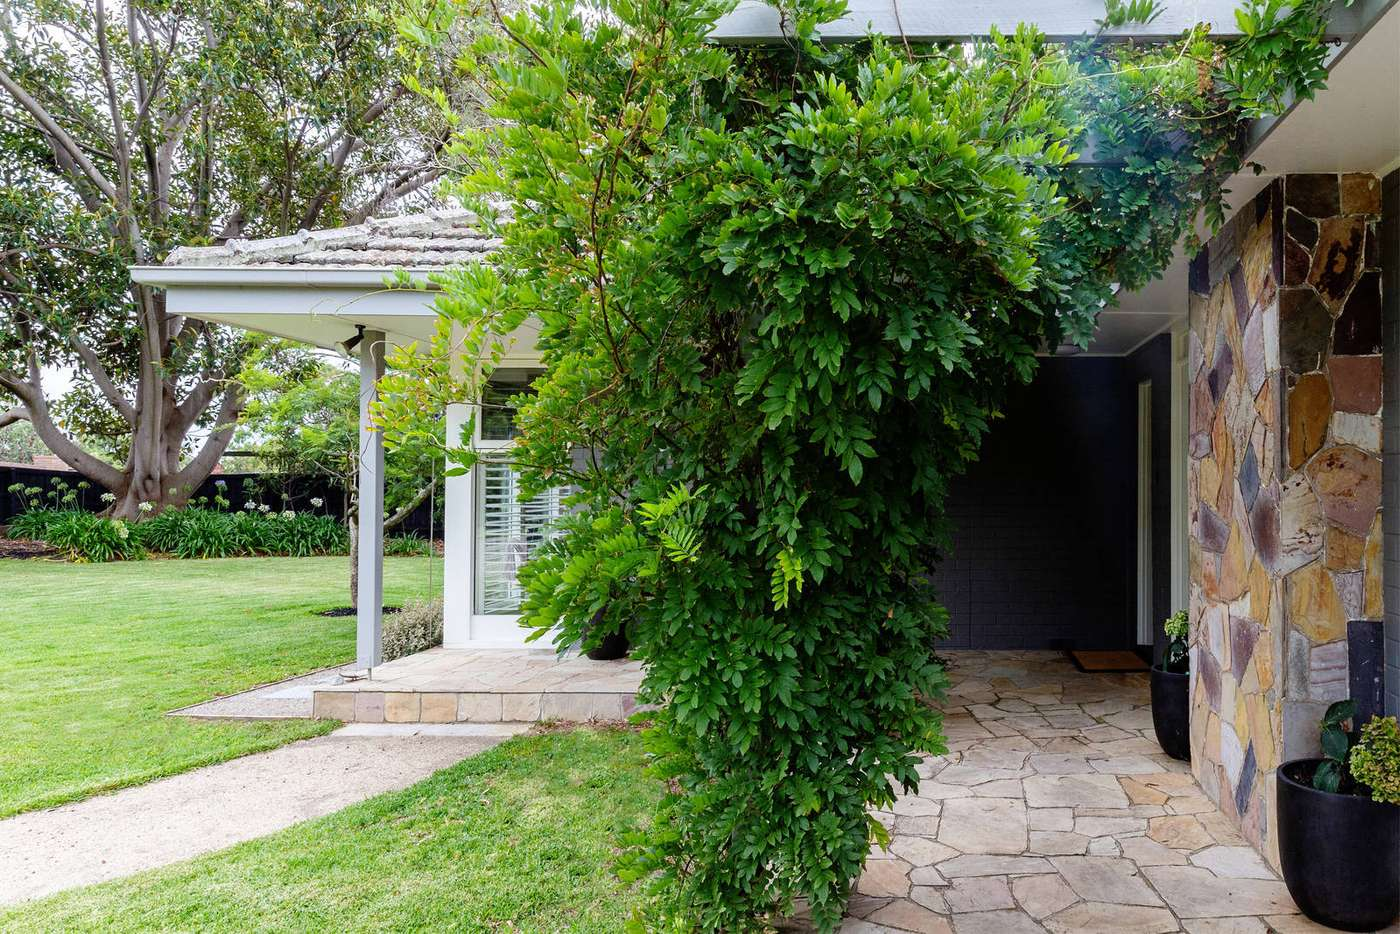 Main view of Homely house listing, 78 Old Mornington Road, Mount Eliza VIC 3930